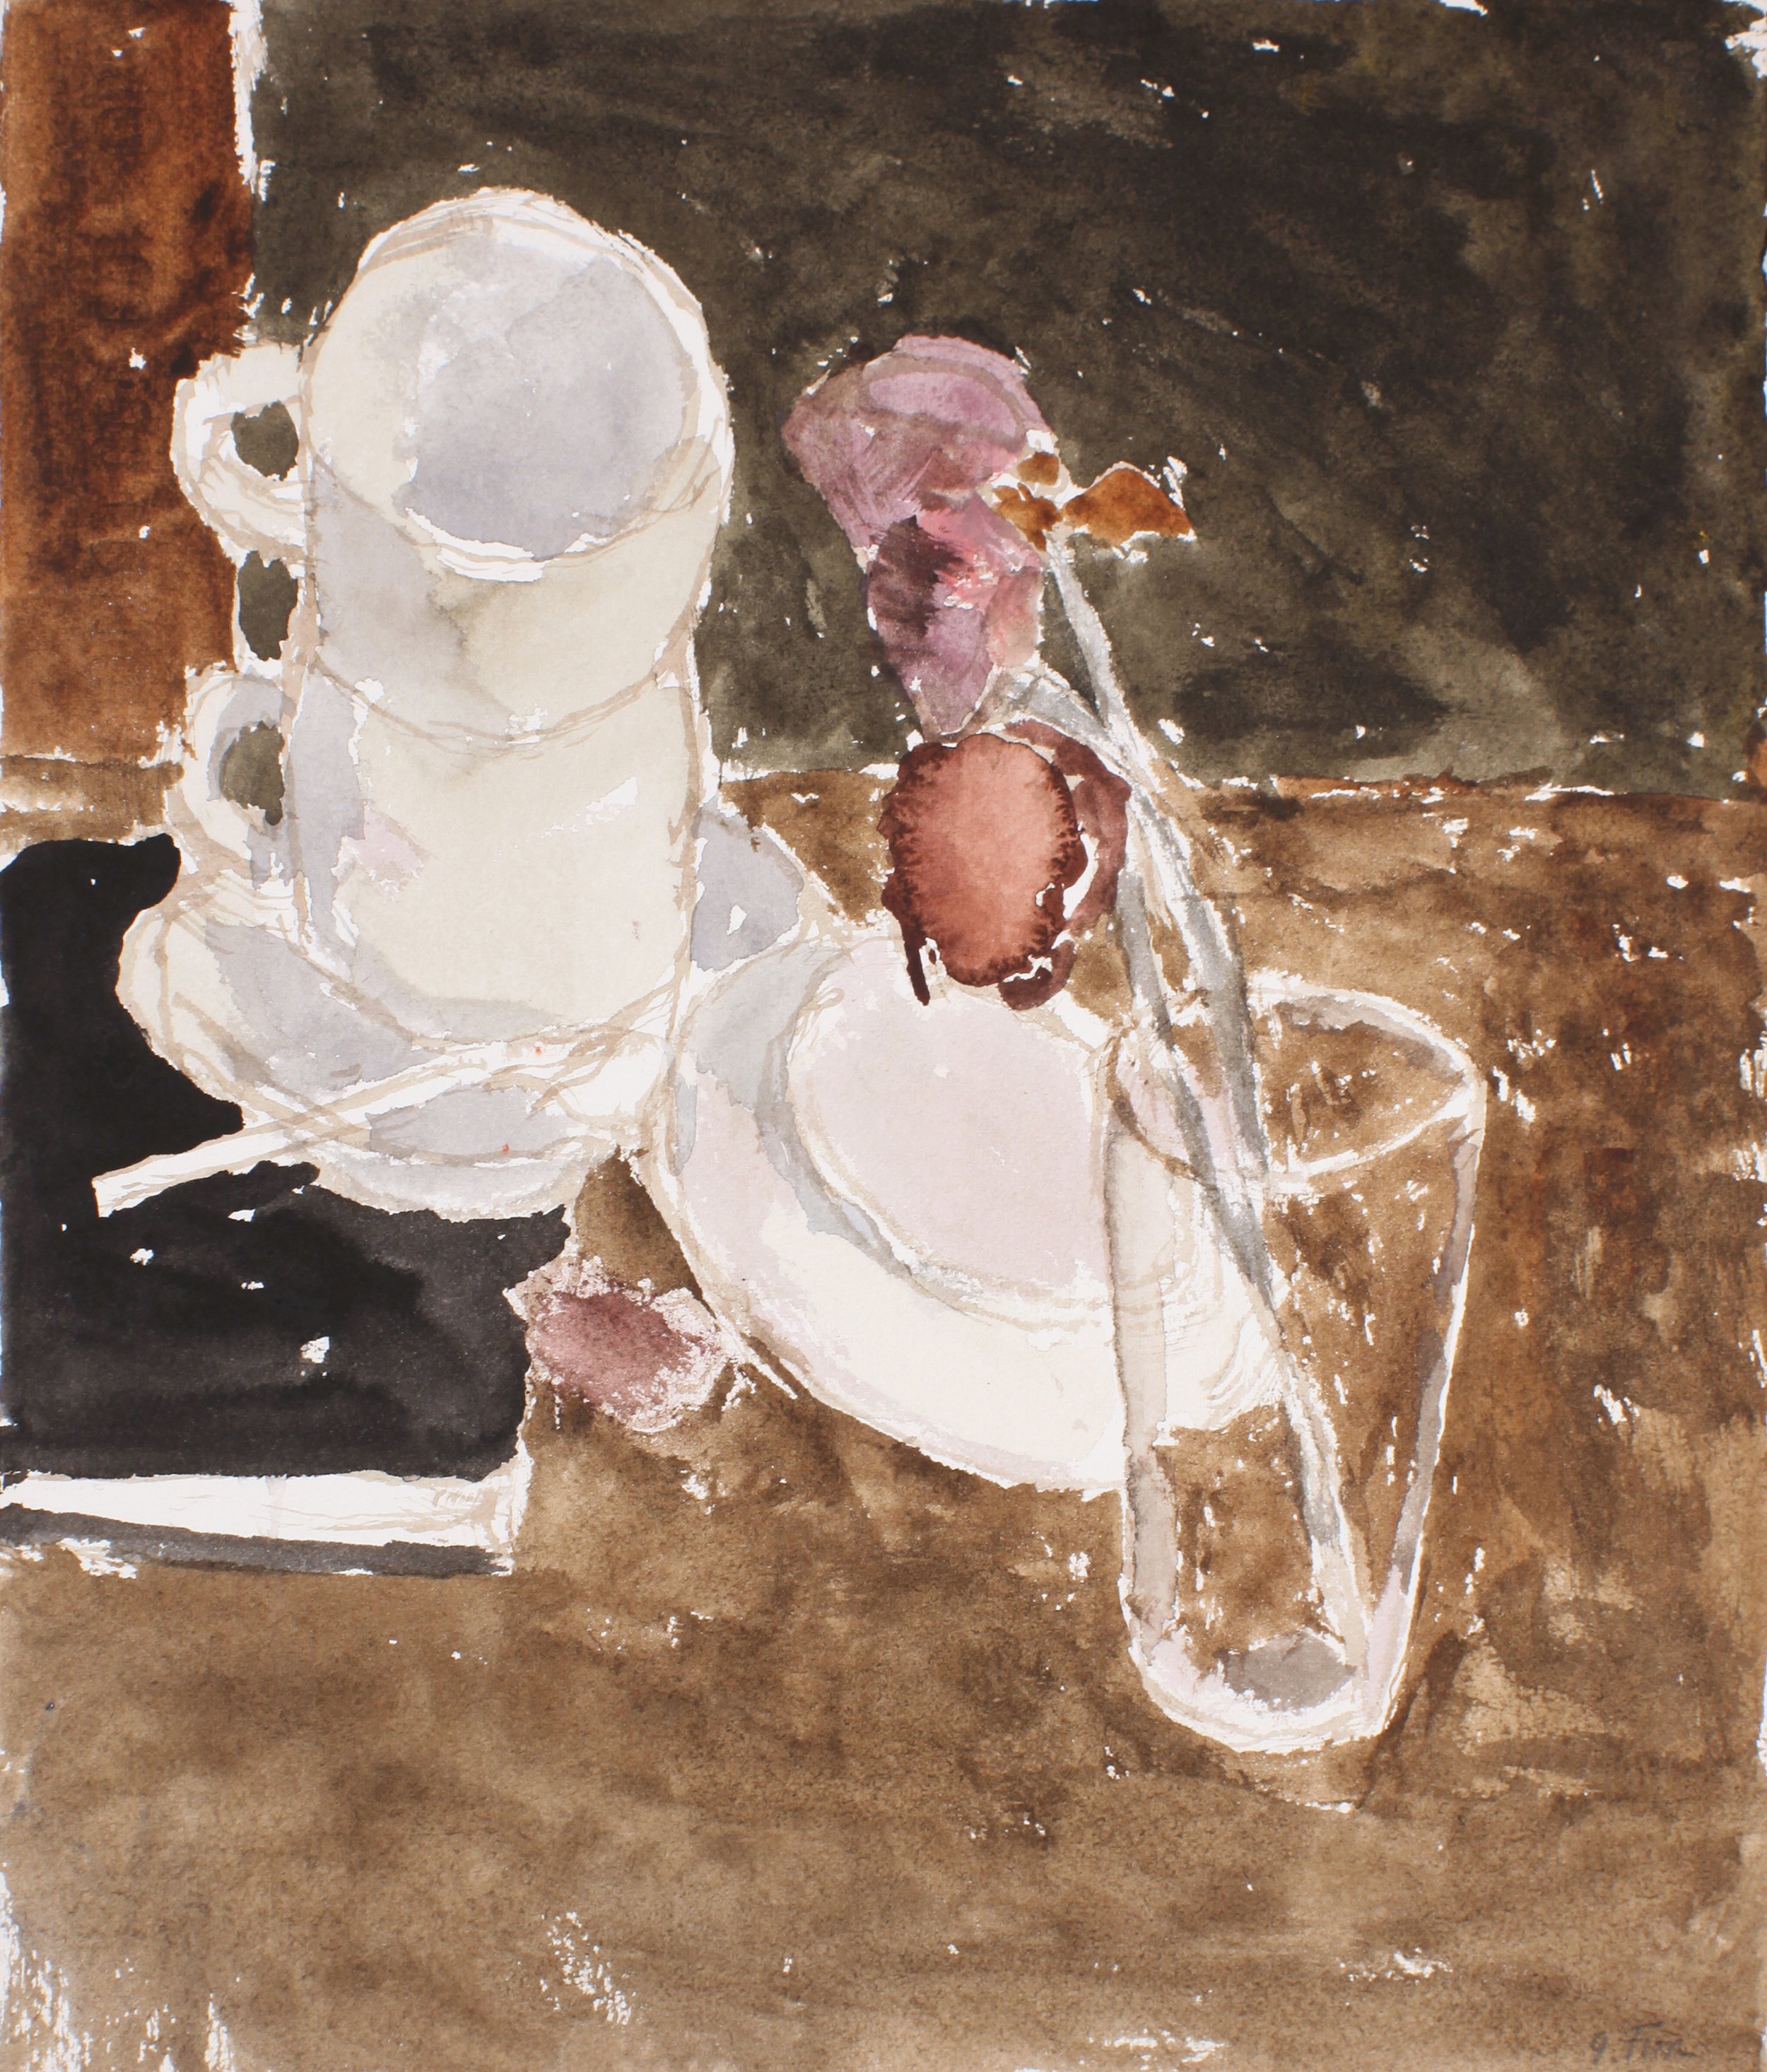 1990s_Still_Life_with_Cups_and_Roses_watercolour_on_paper_13x11in_WPF650.jpg